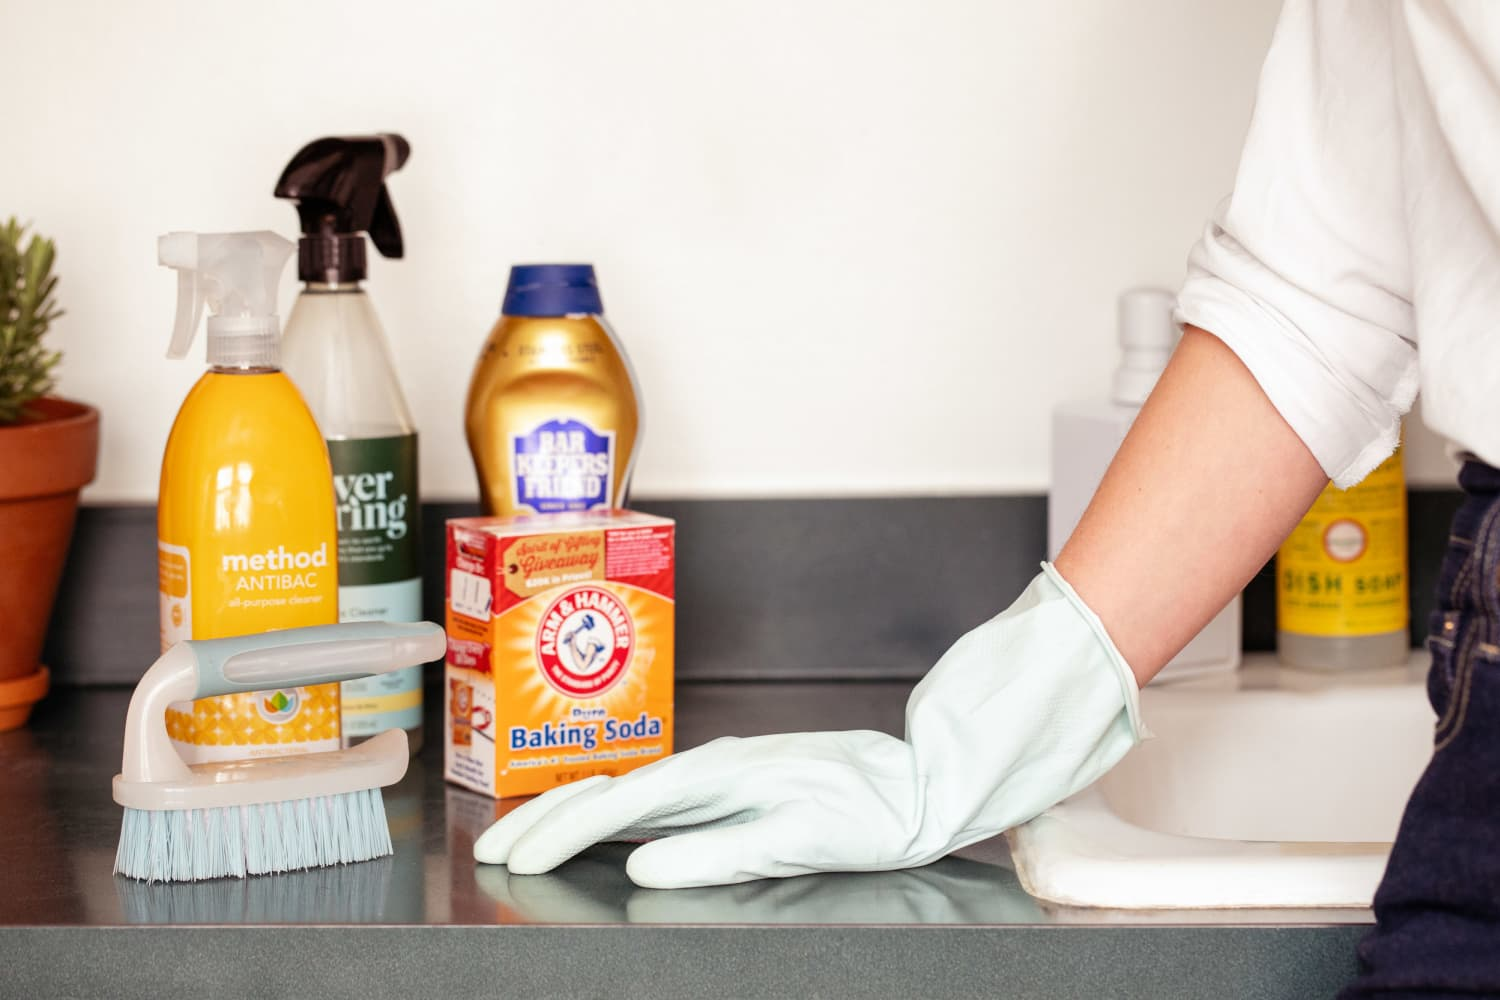 How to Clean Your Entire Kitchen If You Have 20 Minutes … or Even Just 2